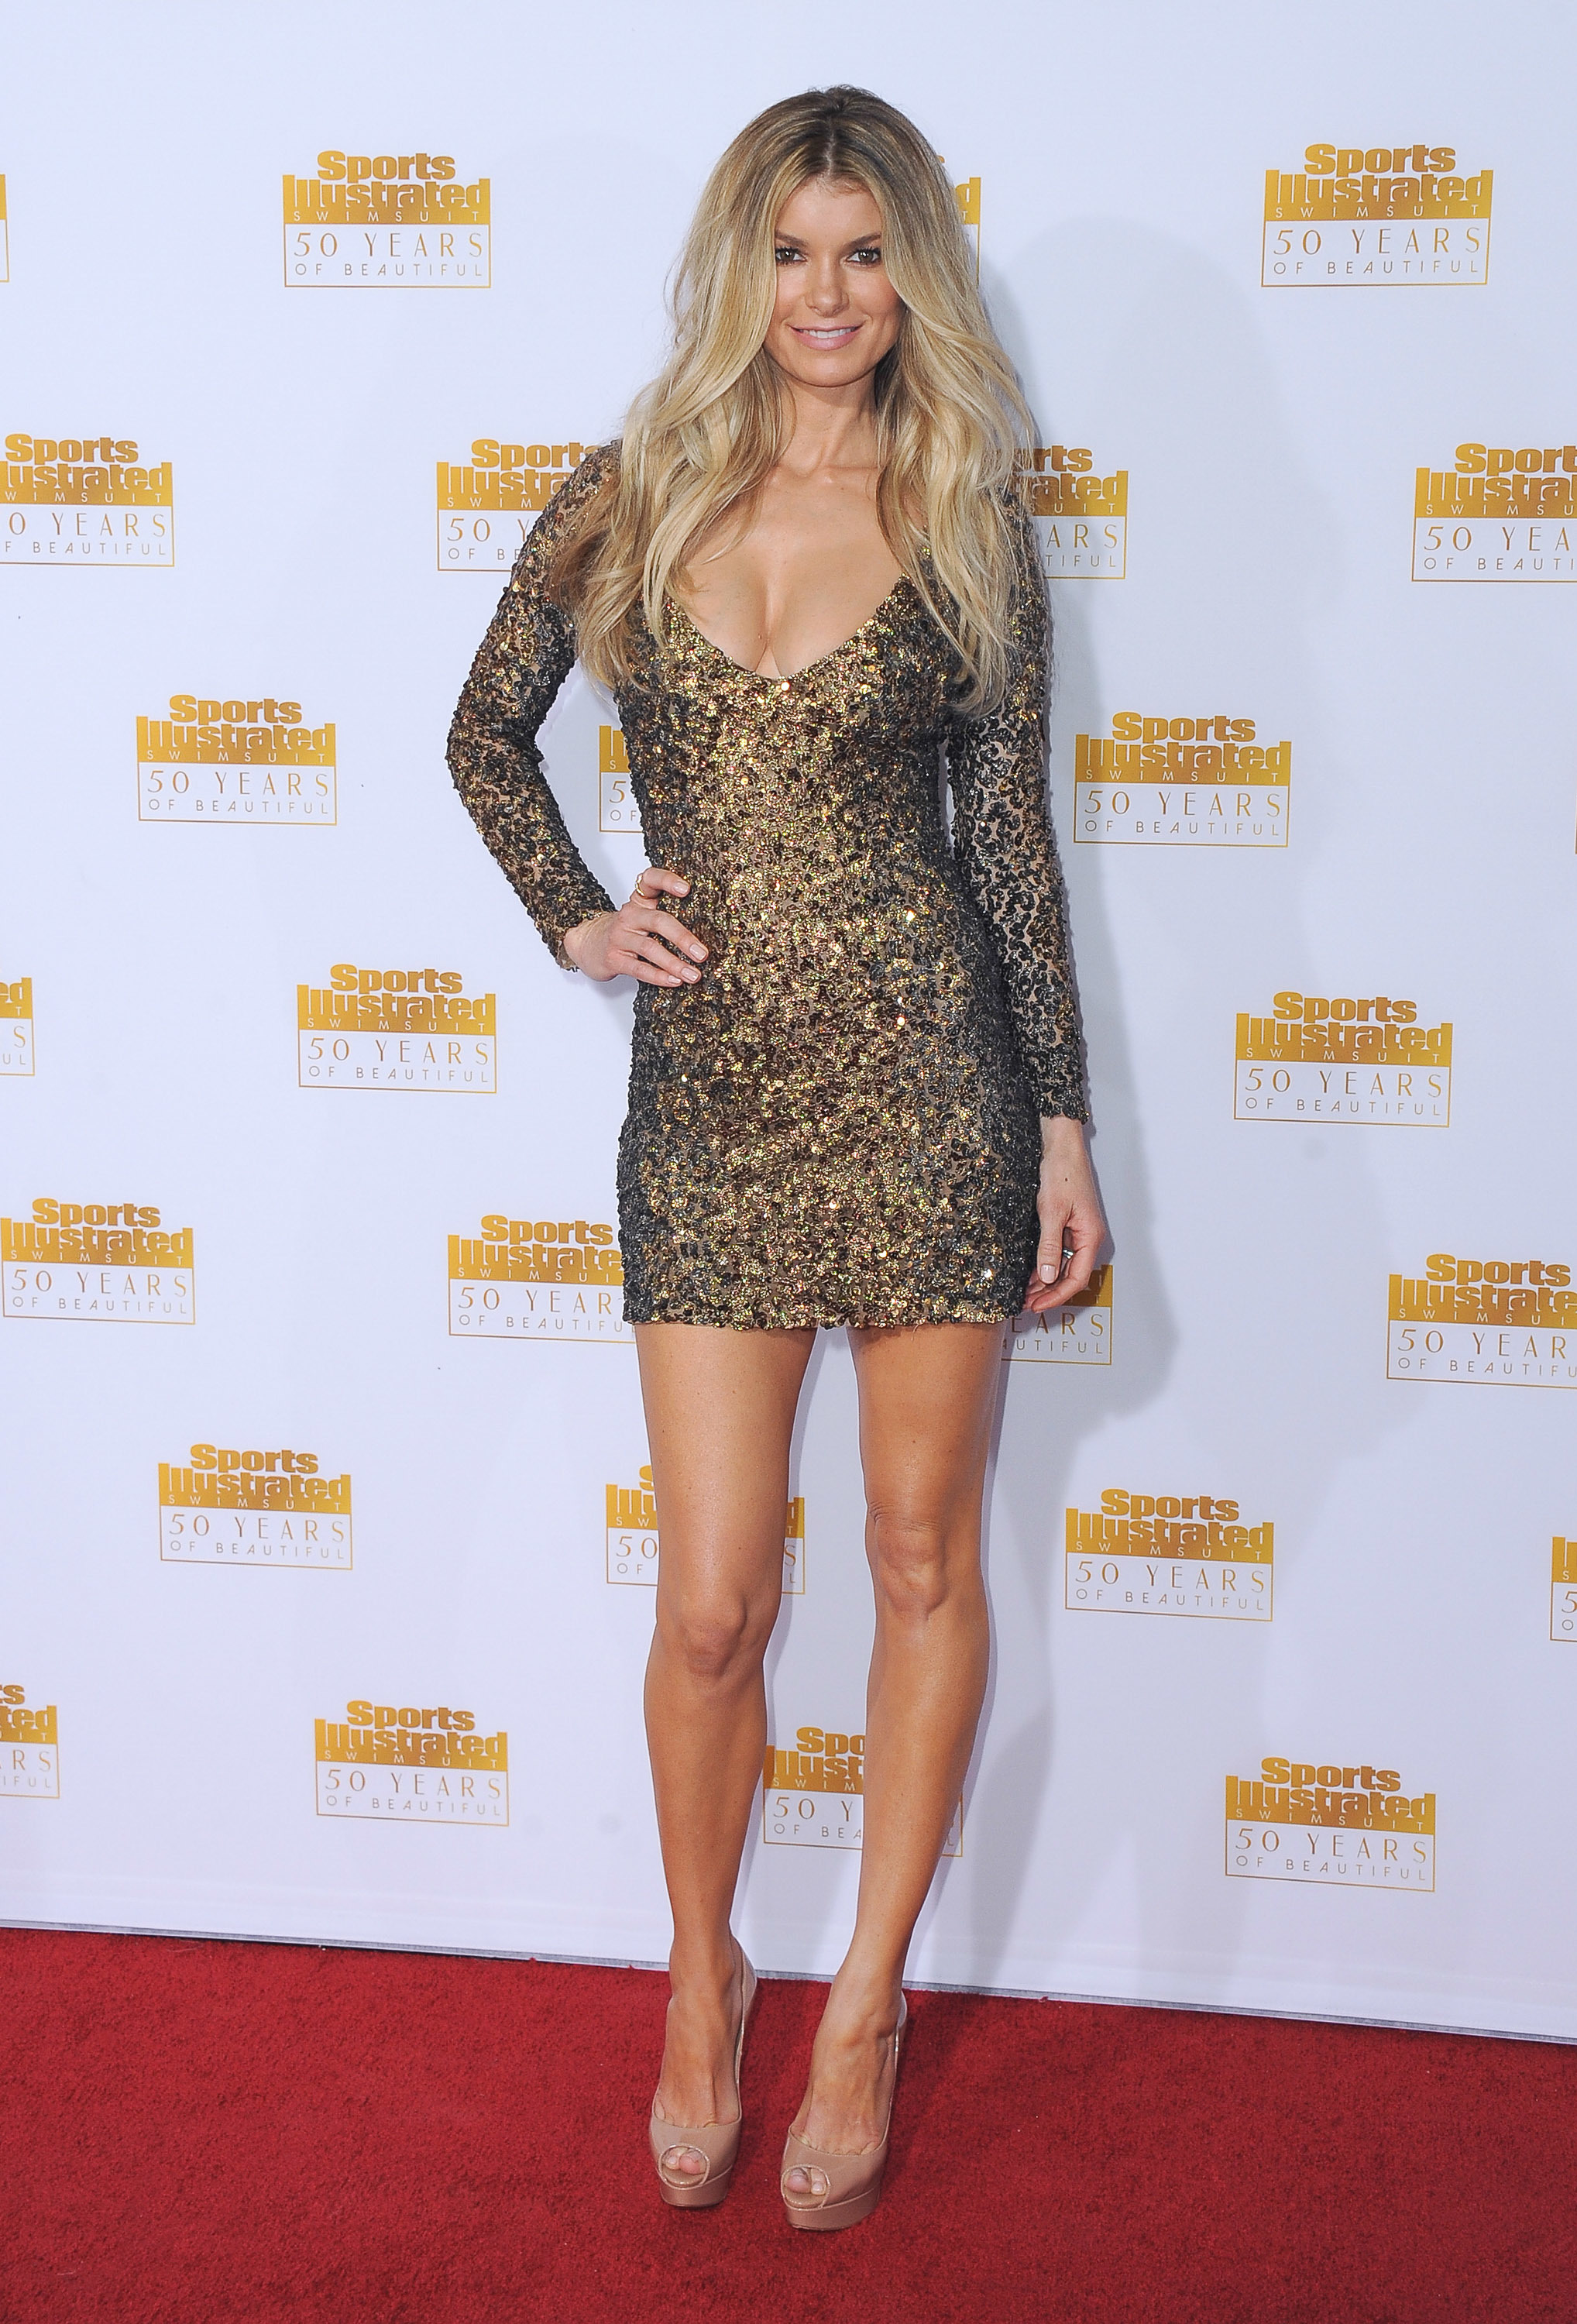 Marisa Miller attends 'The Sports Illustrated Swimsuit Issue' 50th Anniversary Celebration at the Dolby Theatre in Los Angeles on Jan. 14, 2014.